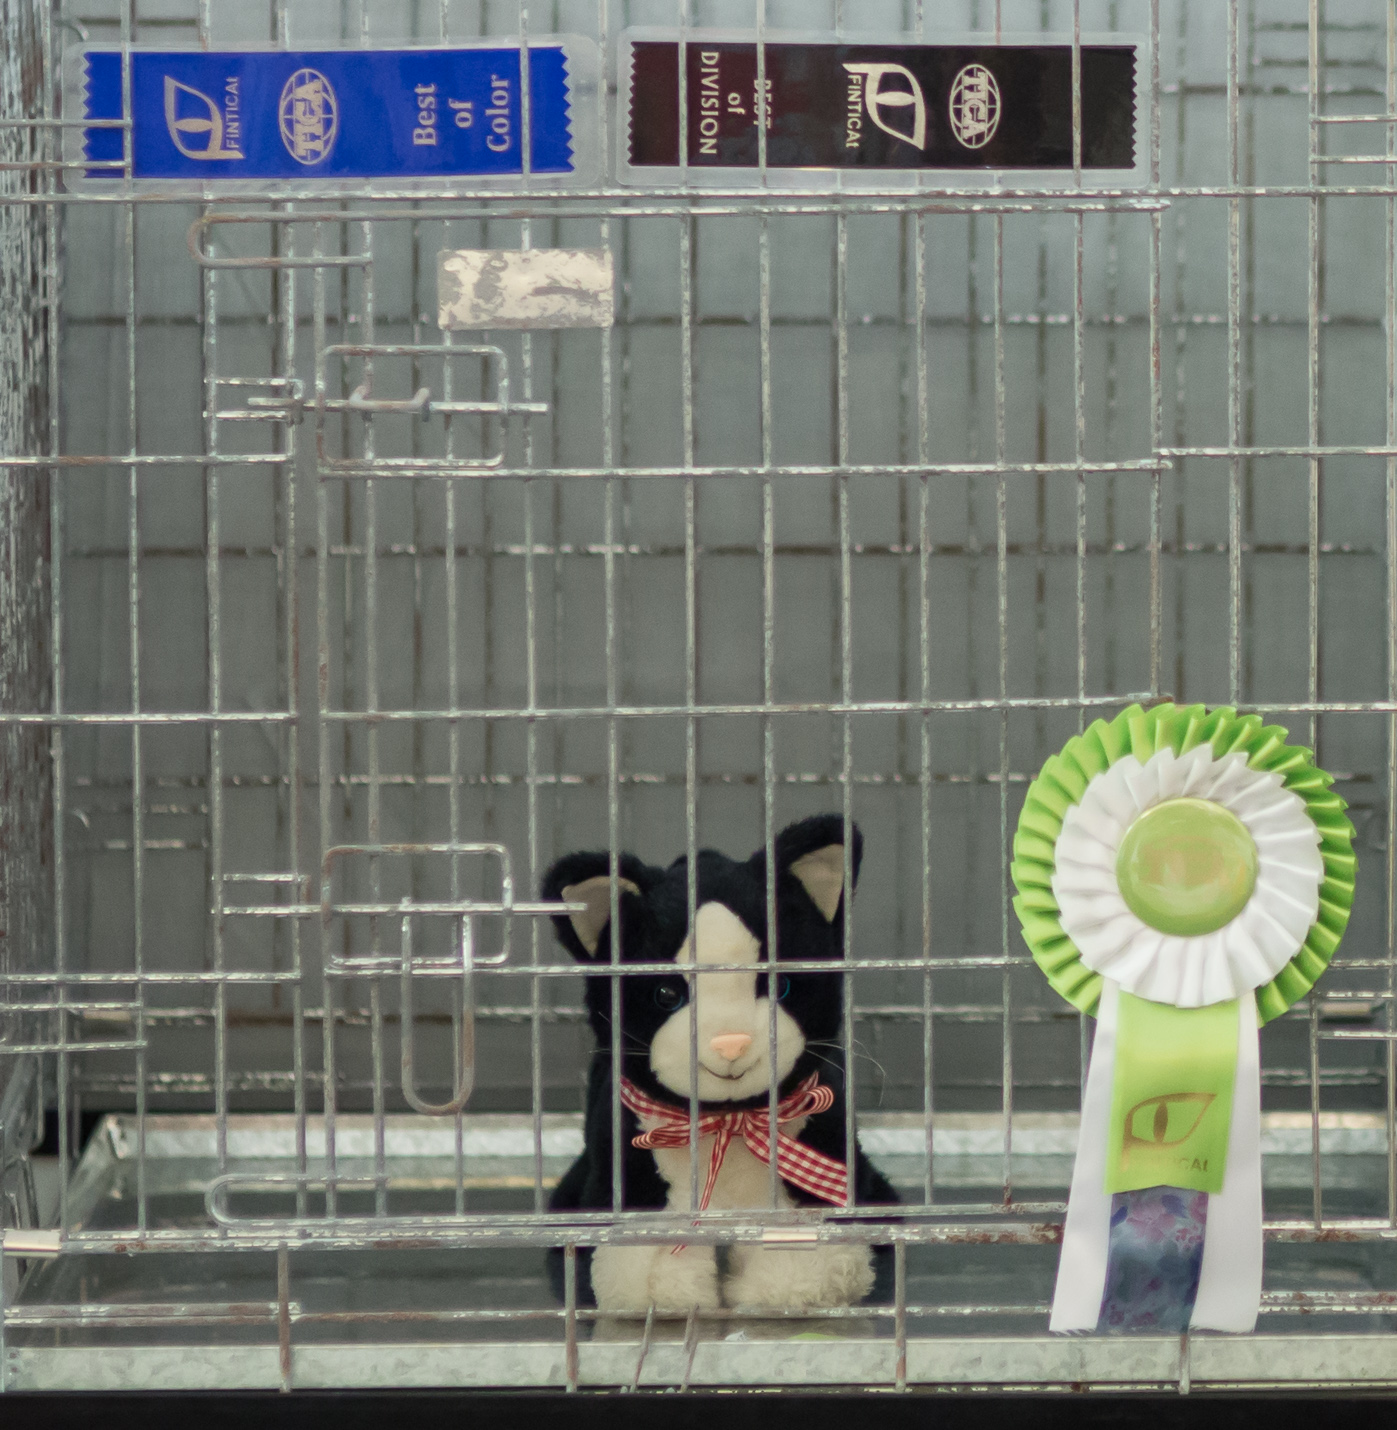 the toy cat contest, photo 223112, 2014-07-12